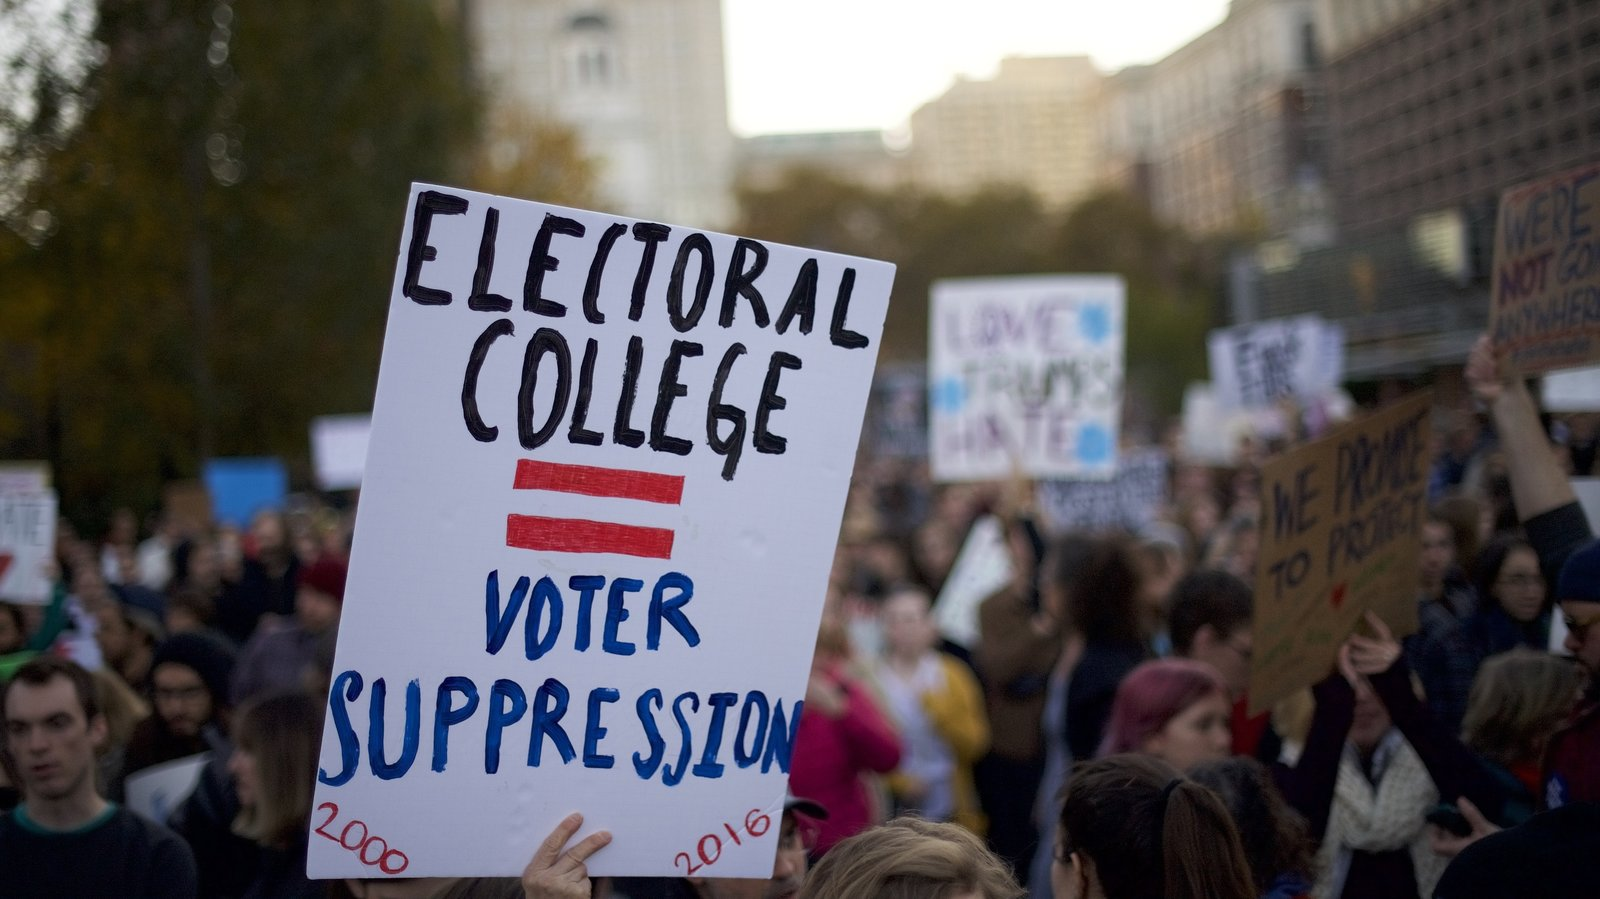 Here's How We Can Elect Our Next President By Popular Vote